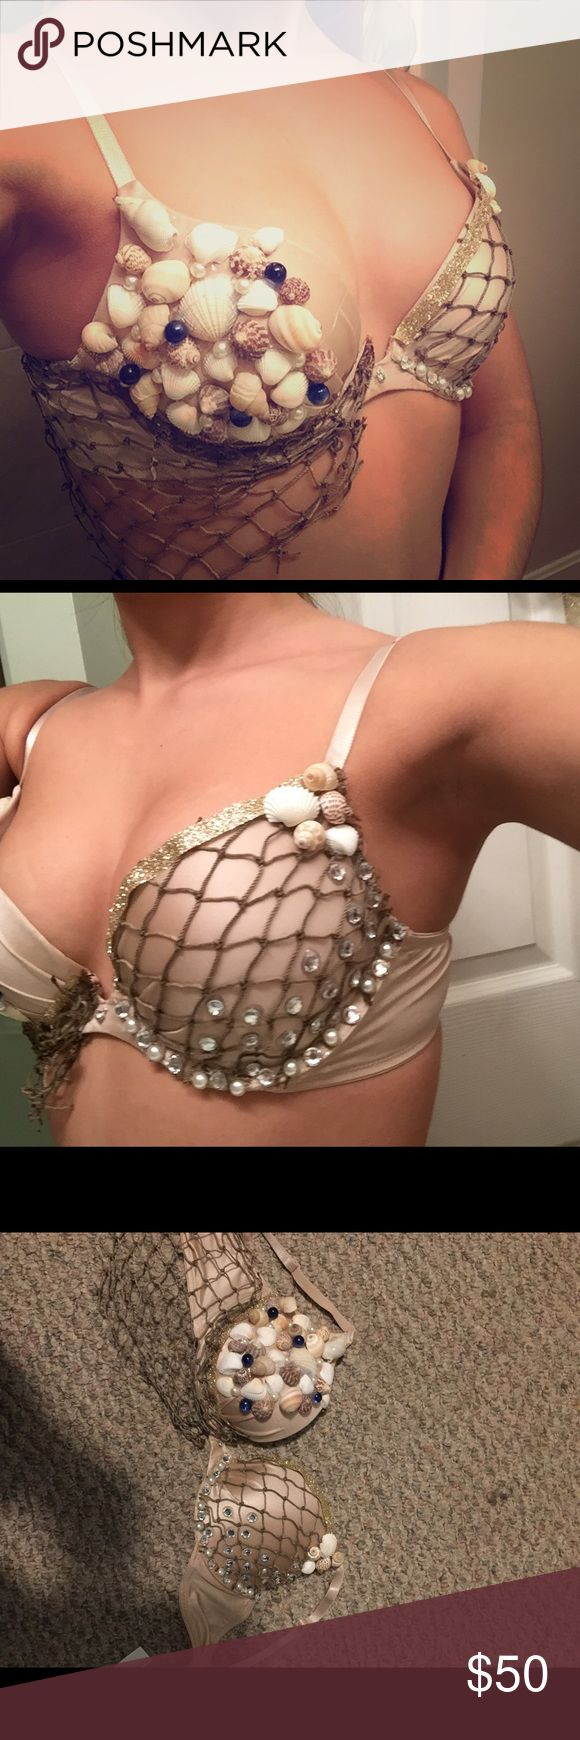 Rave Bra Size 36A. Push-up. Has shells, small blue marbles,sequins and pearls on it. Side netting can be removed if you wish. Was going to use for mermaid Halloween costume, but chose a different costume instead. This bra has NEVER been worn!   Make me an offer! Intimates & Sleepwear Bras